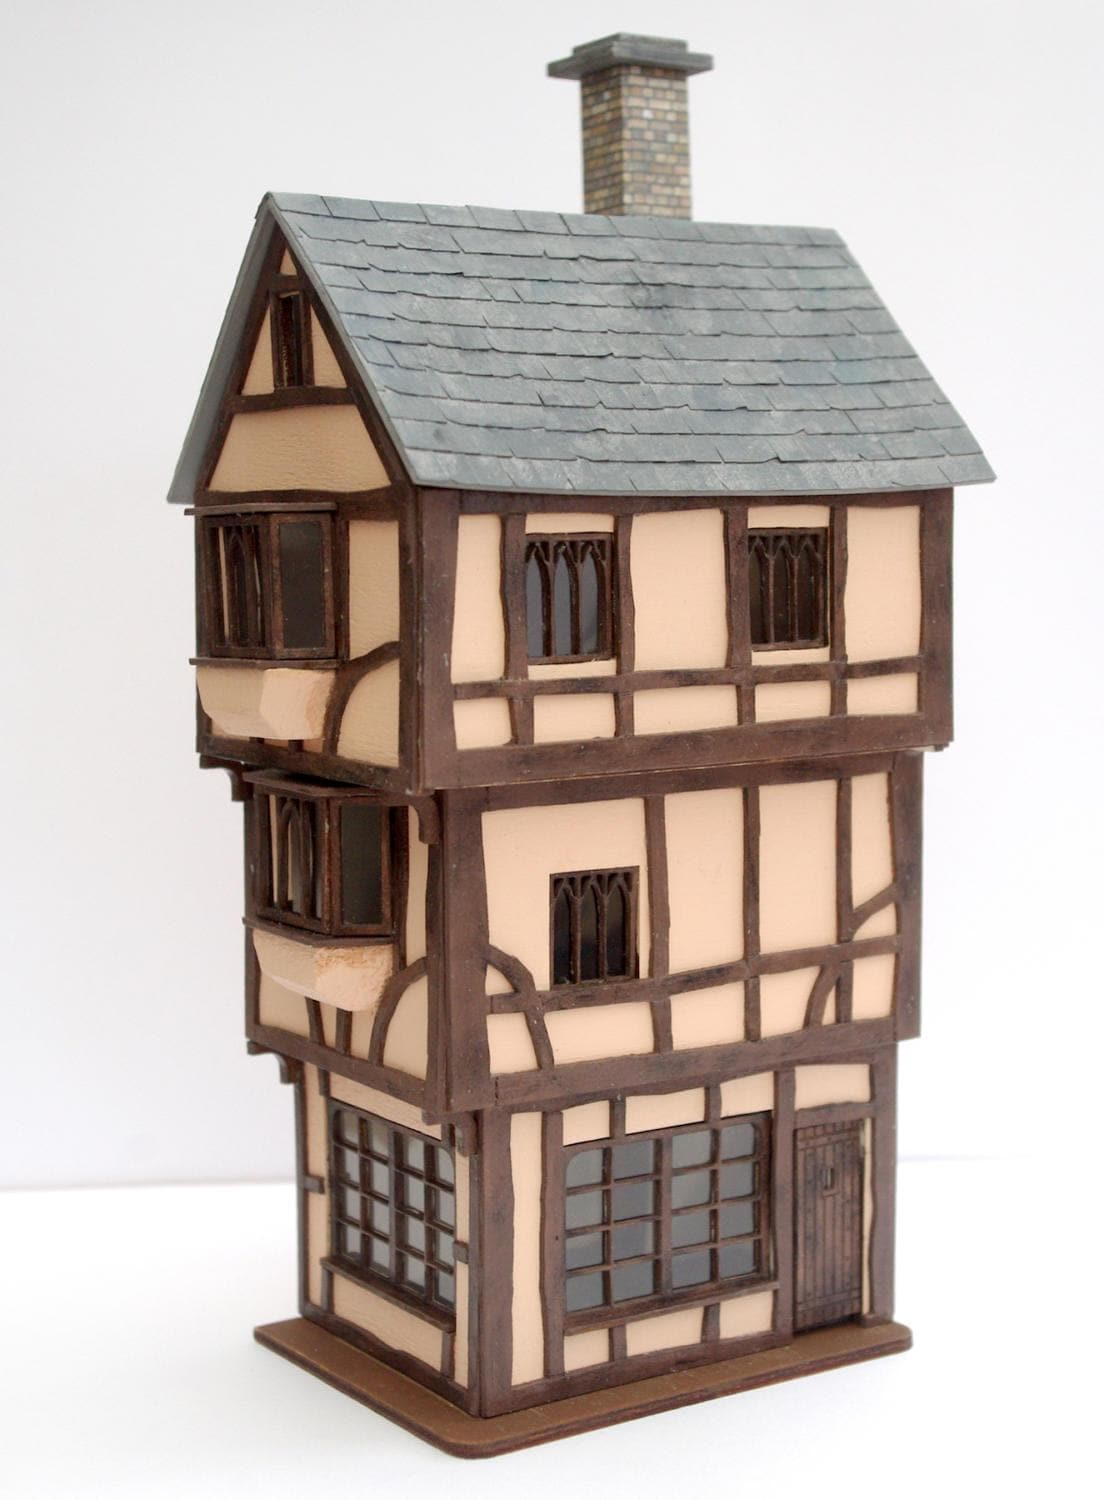 Miniature Model 148 Dolls House Kit  The HOUSE THAT MOVED 148 Scale